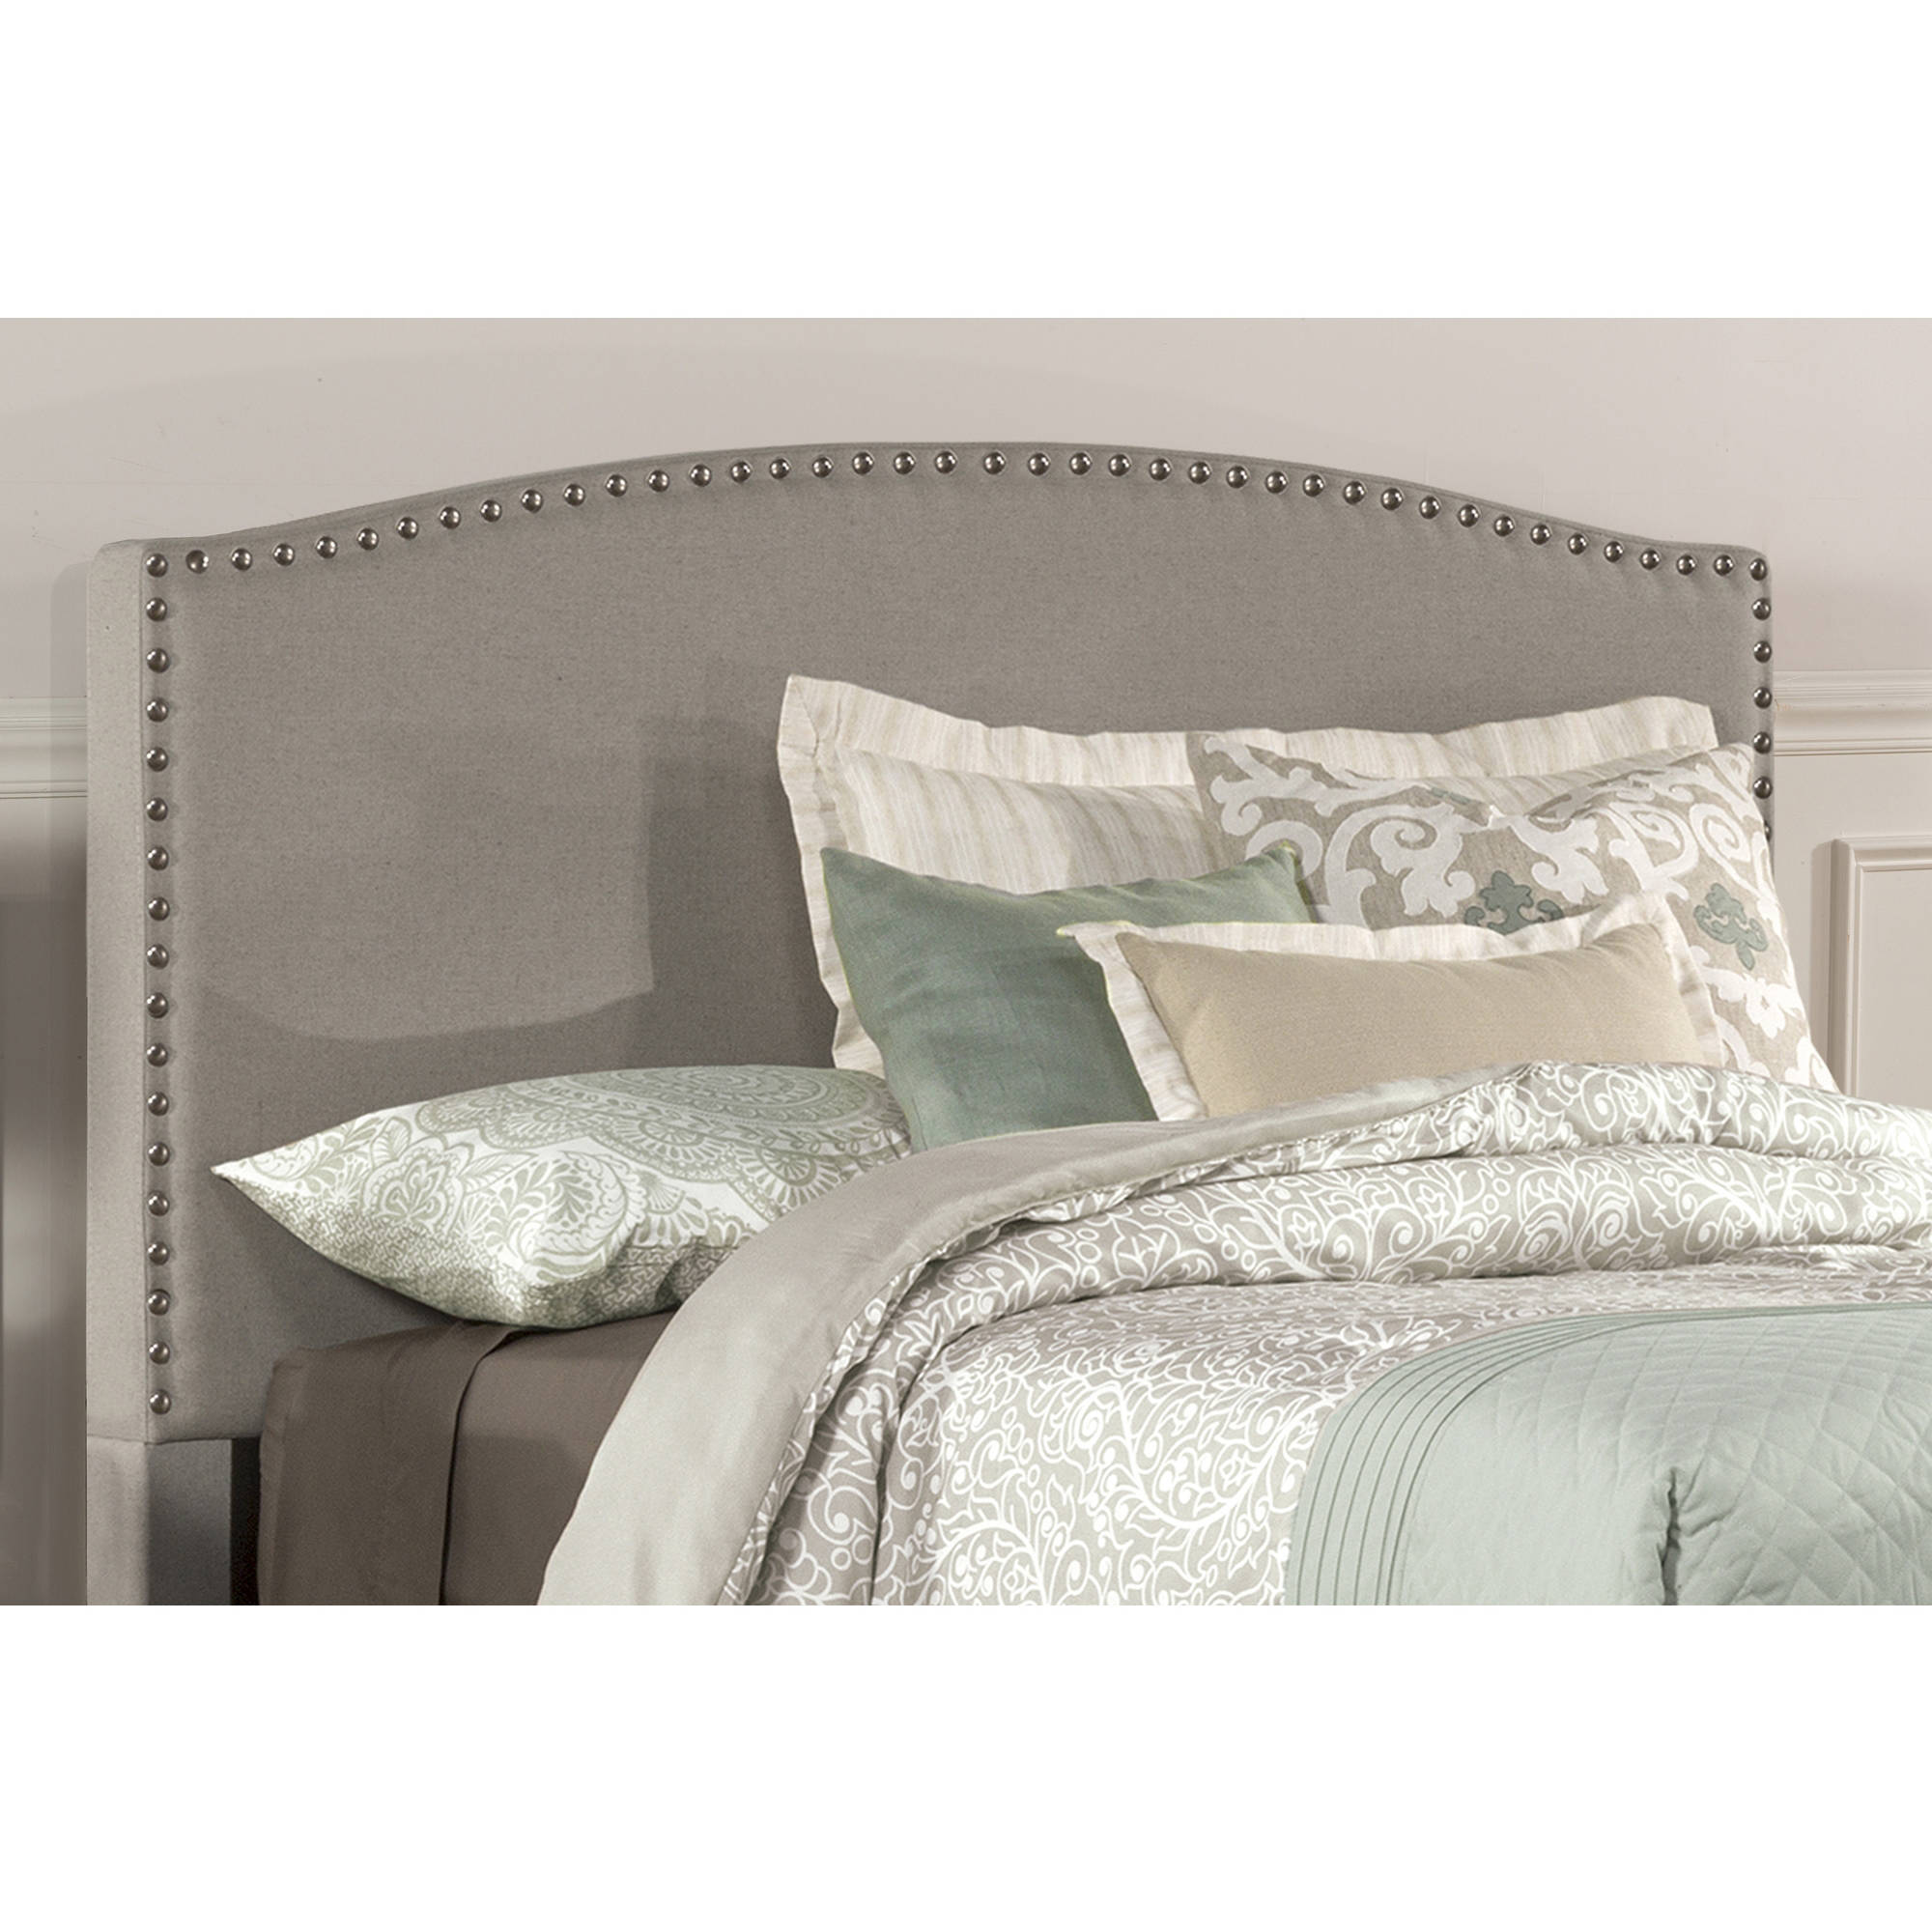 Kerstein Queen Bed, Dove Gray (Box 1 of 3)